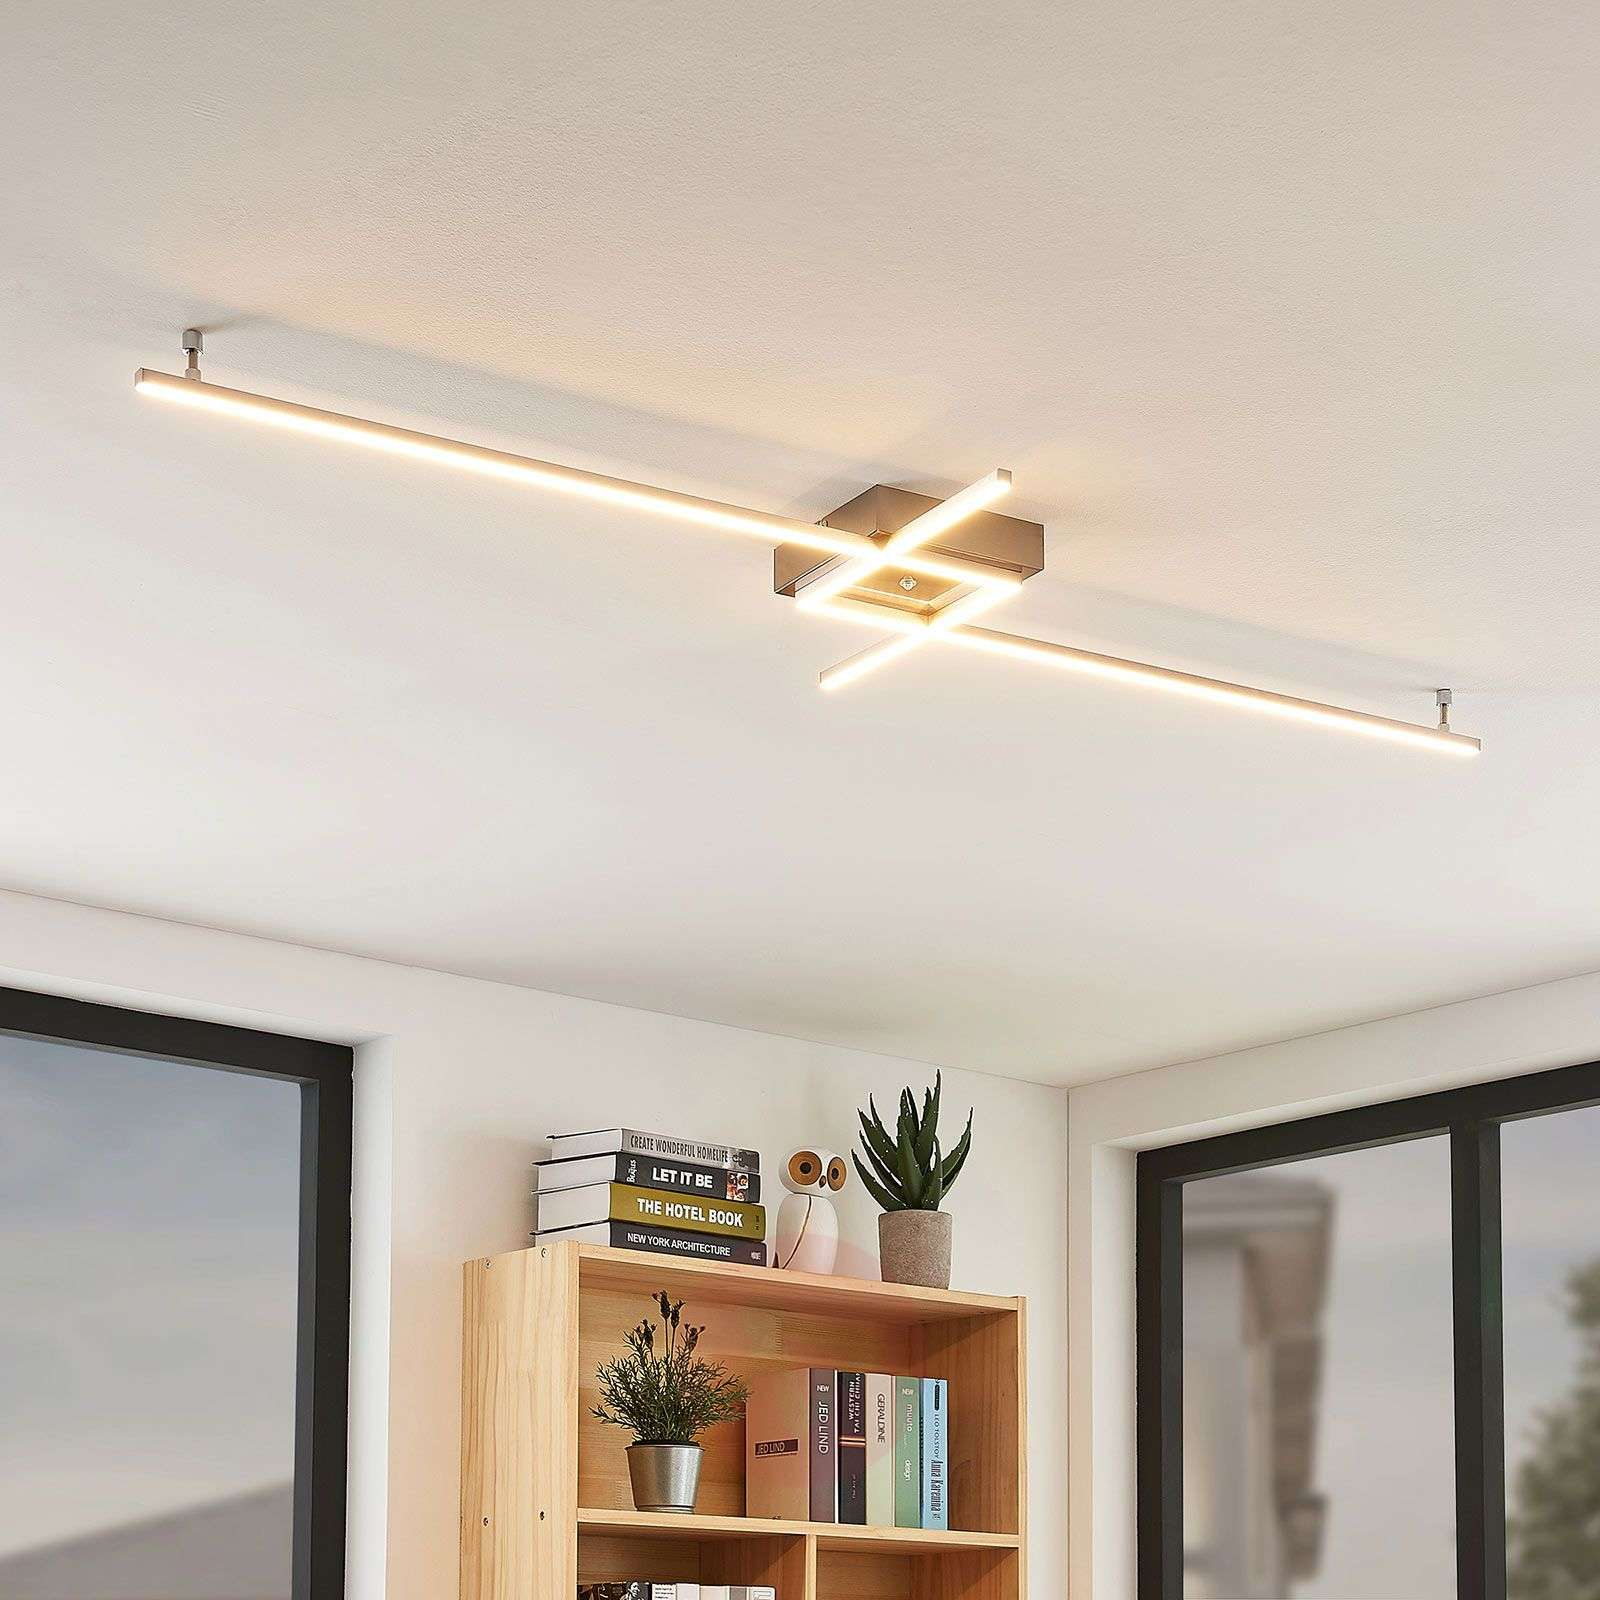 Keki LED ceiling light with remote control-7620043-04